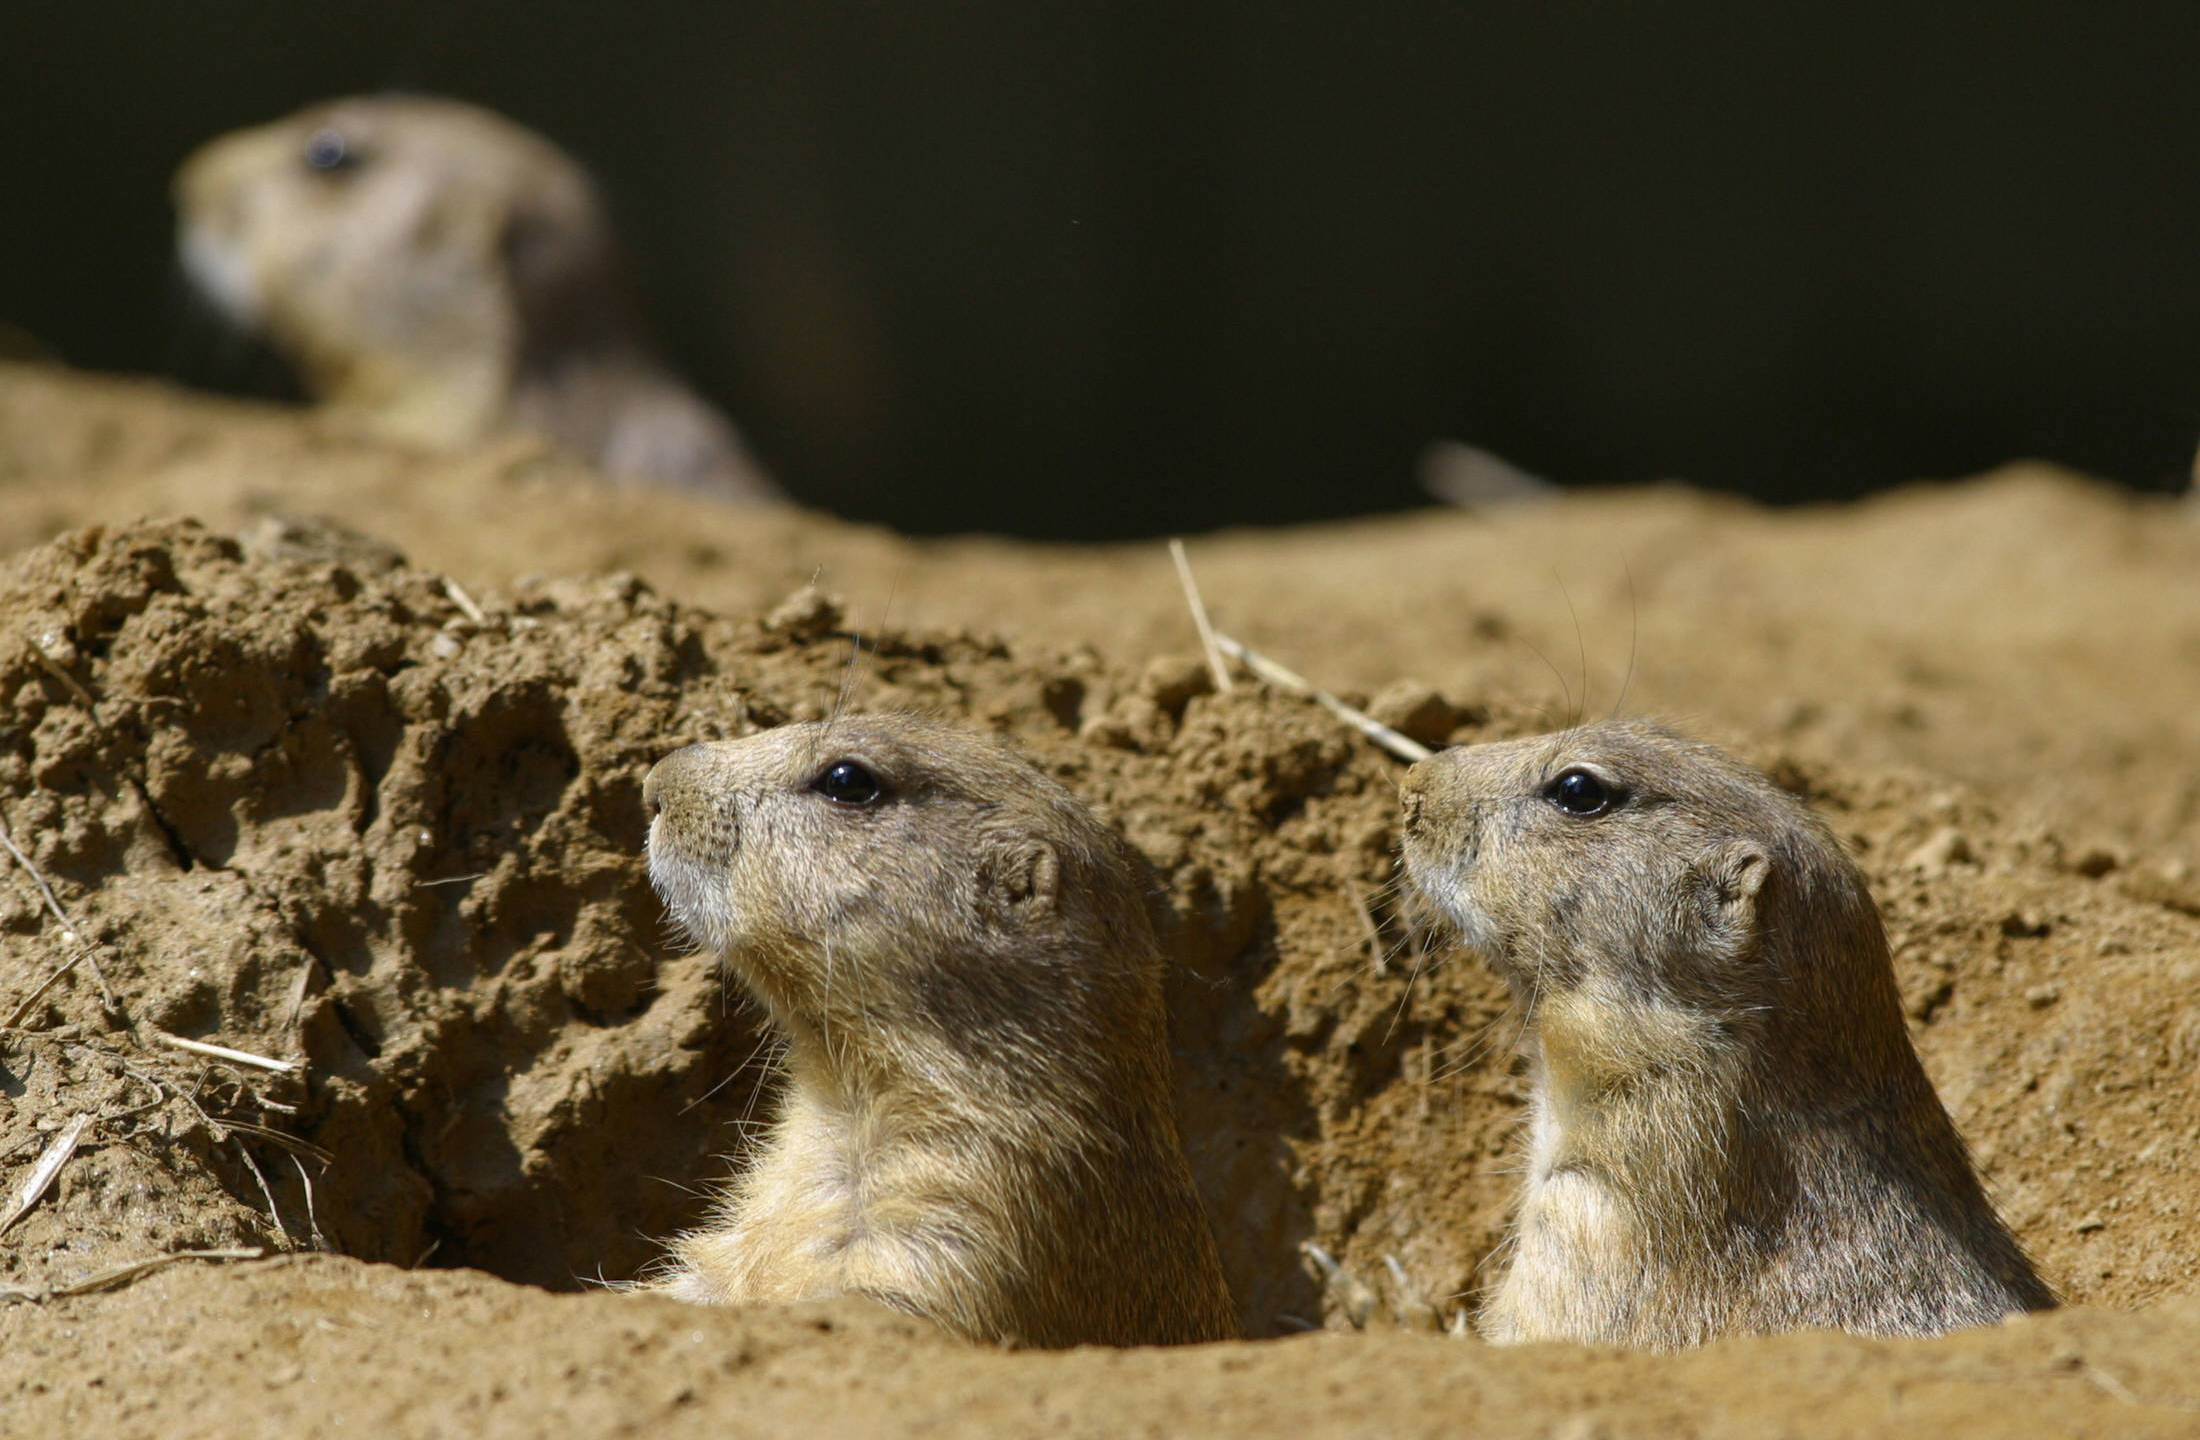 Black-tailed prairie dogs peer out from their burrow on July 28, 2002 at the National Zoo in Washington, D.C (Credit: ROBYN BECK/AFP/Getty Images)